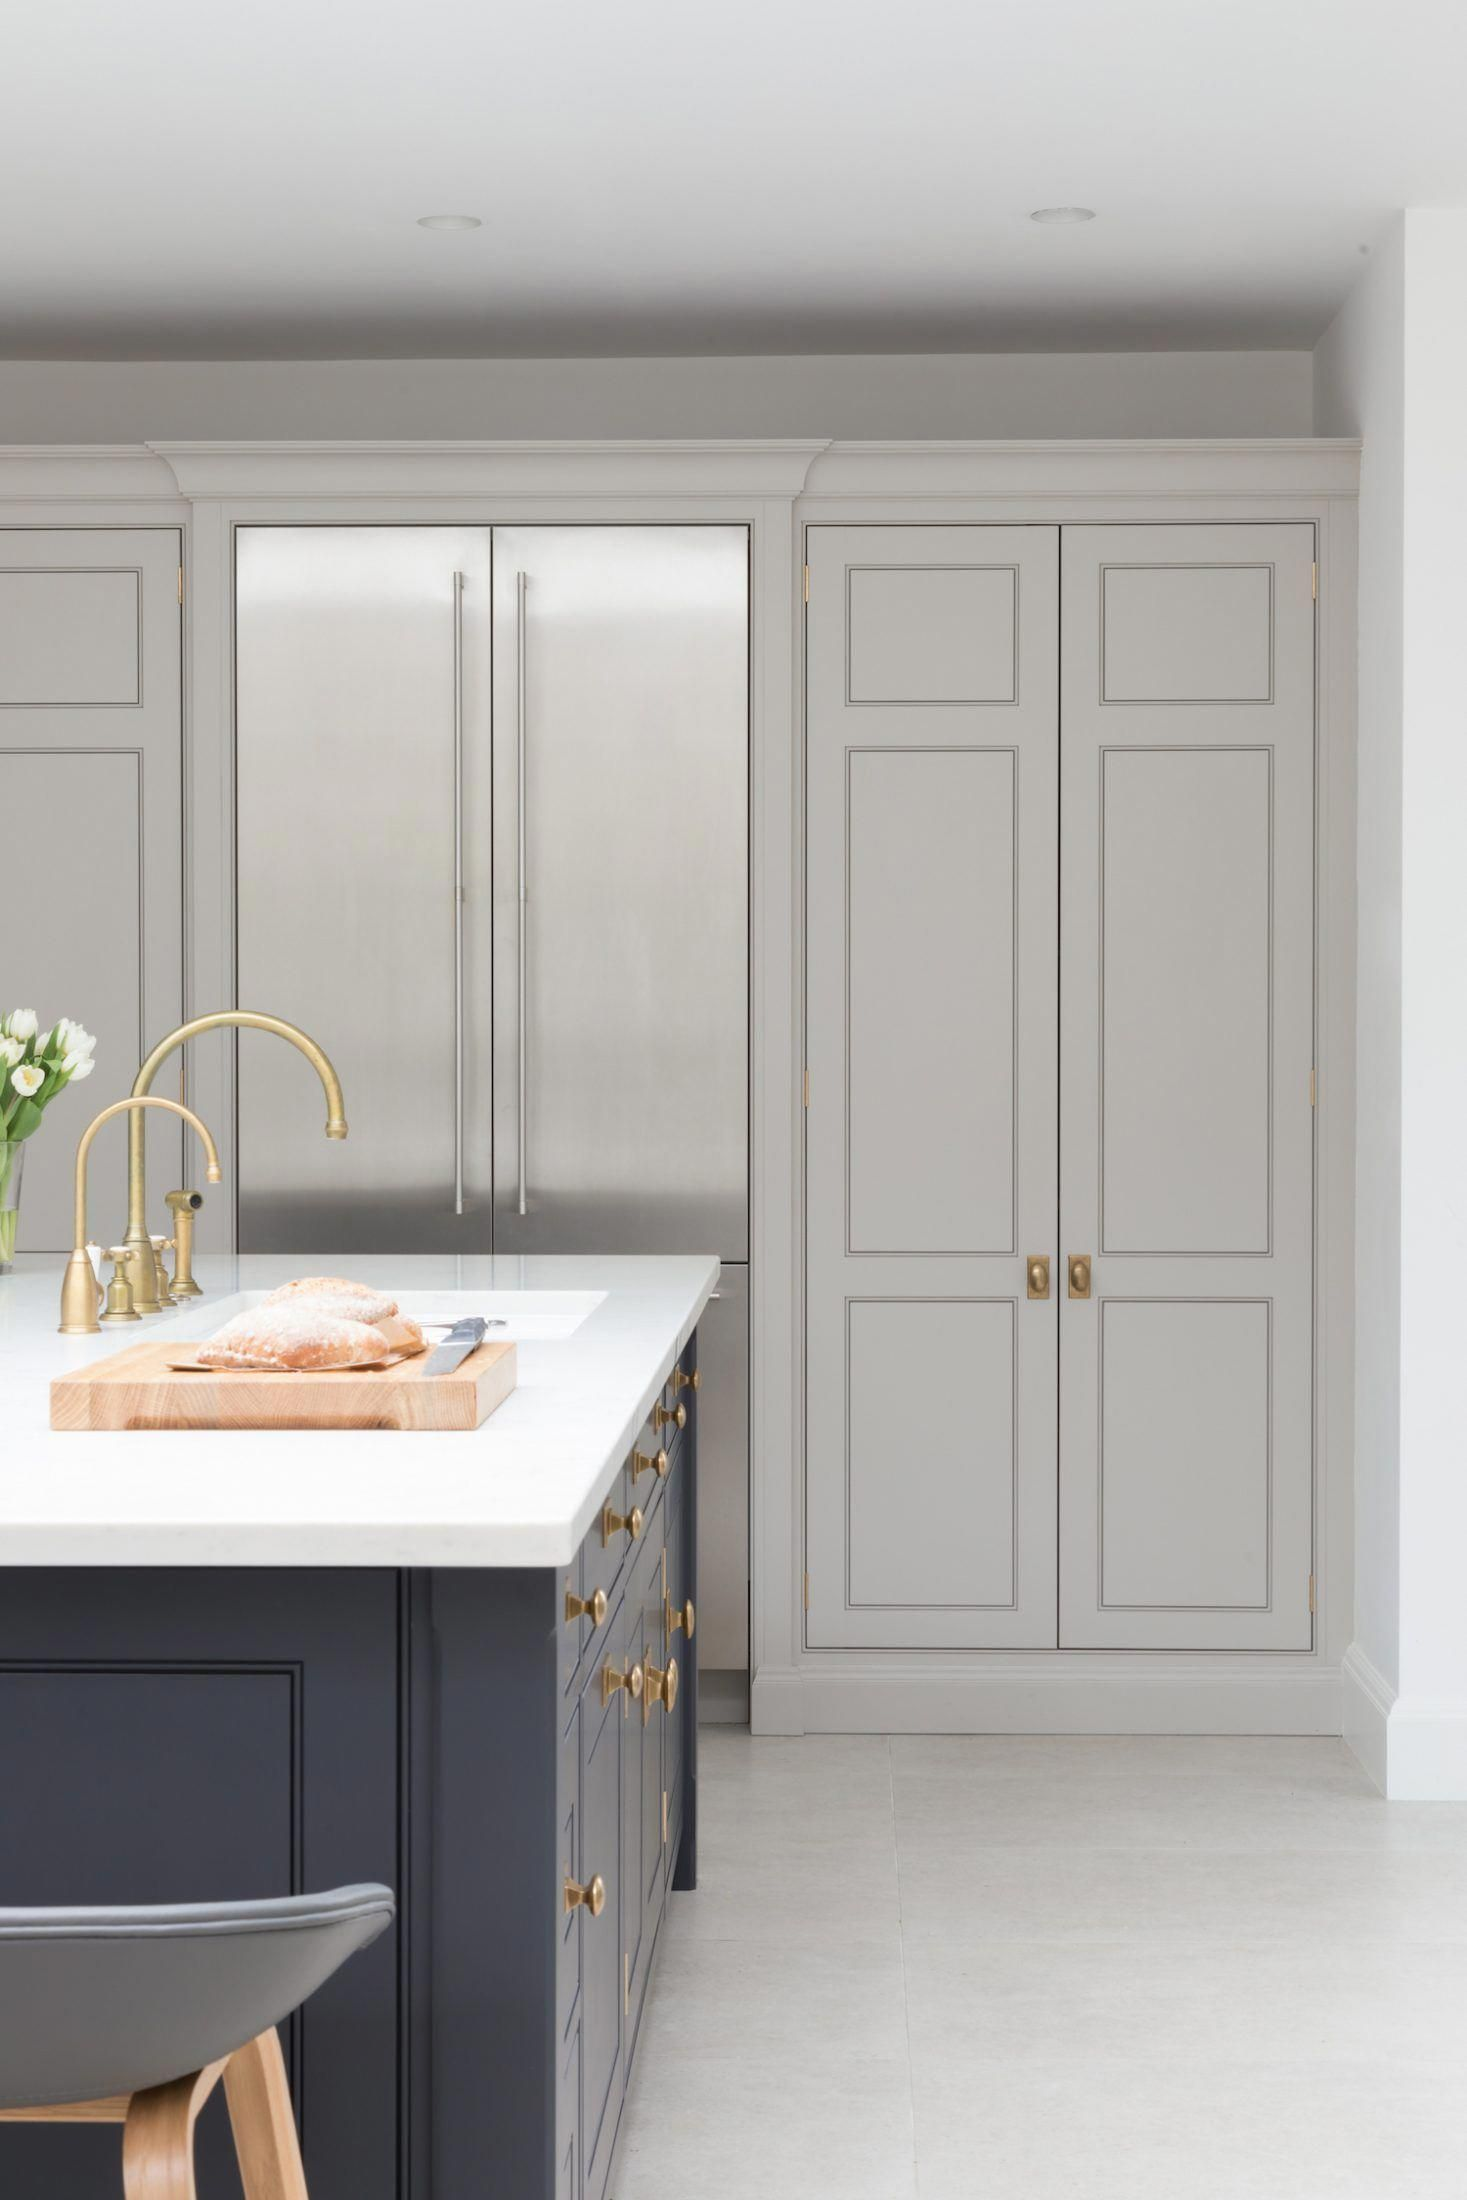 Light Gray Floor To Ceiling Cabinets With Built In Flush Fridge Navy Painted Kitchen Floor To Ceiling Cabinets Kitchen Renovation Light Grey Kitchen Cabinets